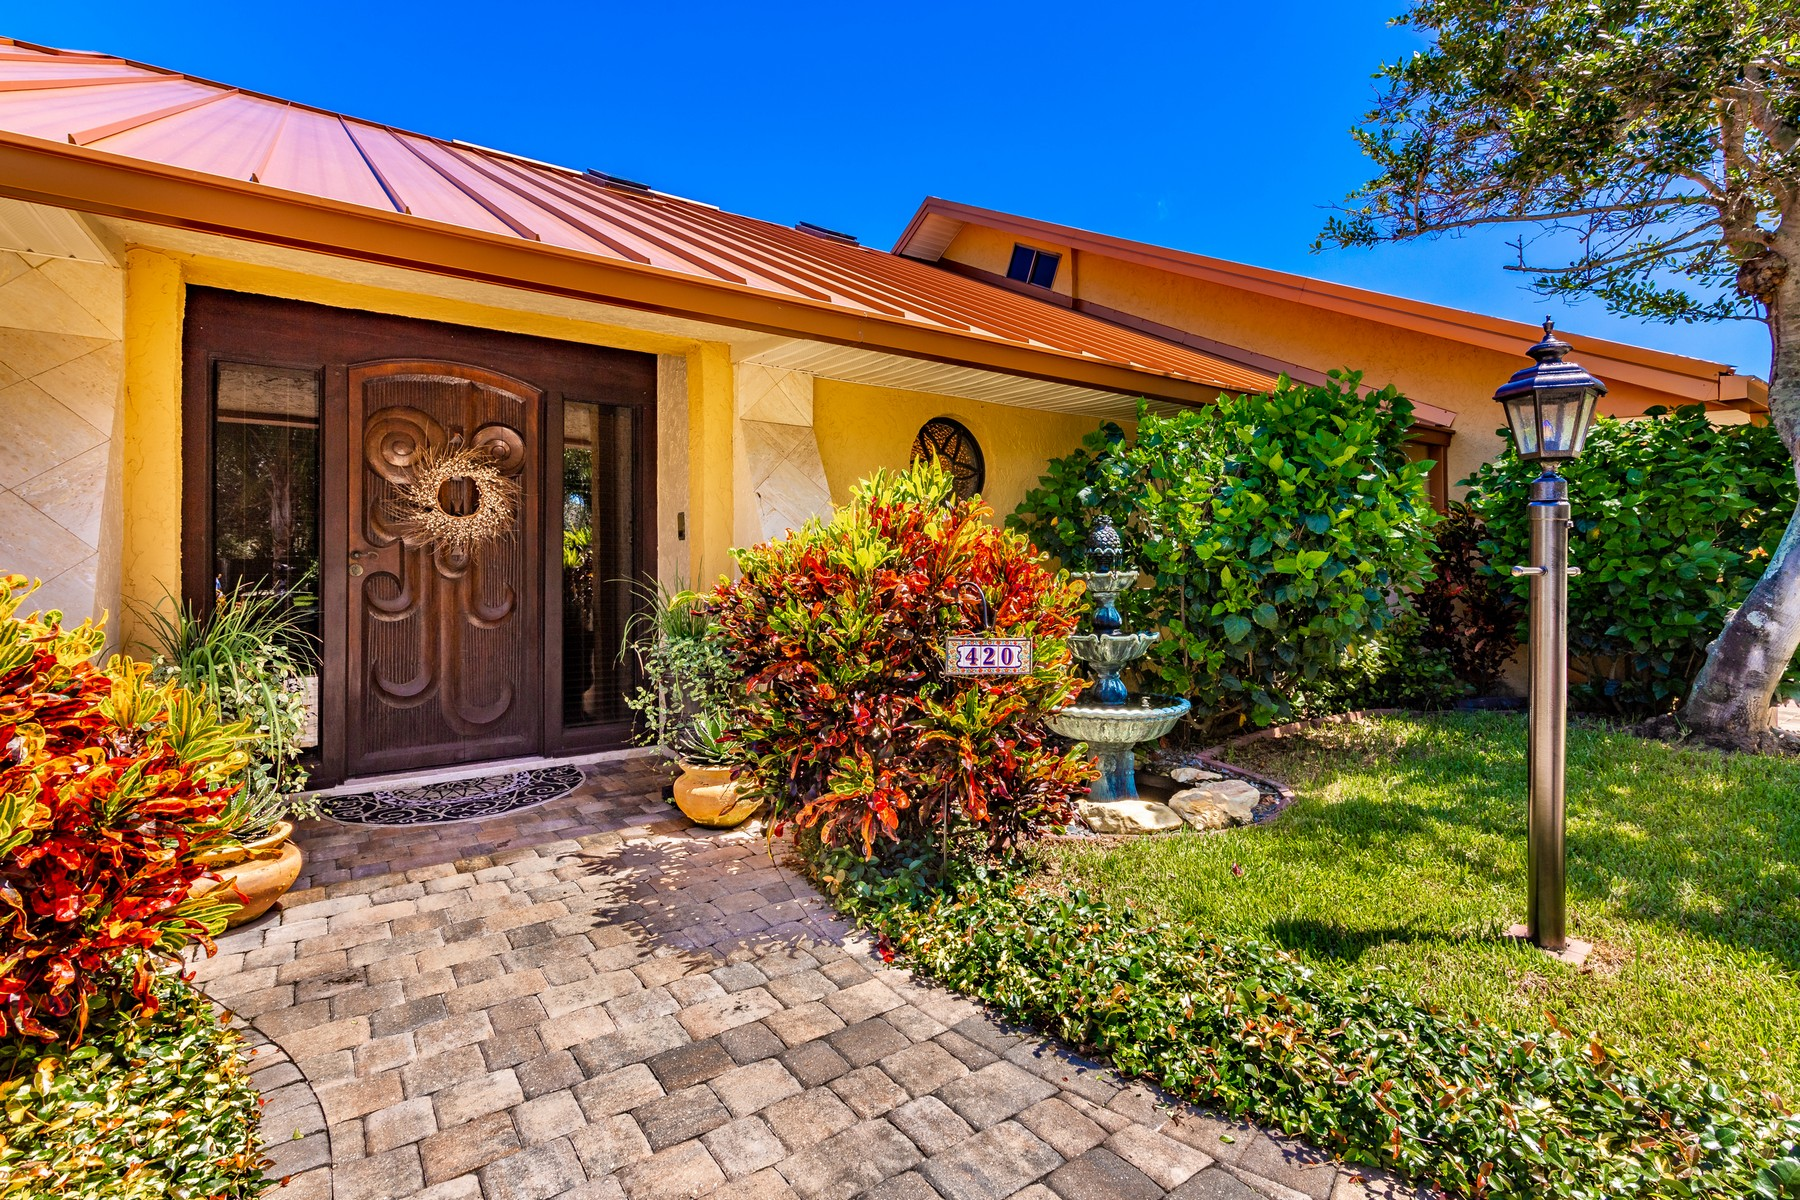 Additional photo for property listing at One of a Kind Home Full of Charm & Character 420 Monaco Drive Indialantic, Florida 32903 United States